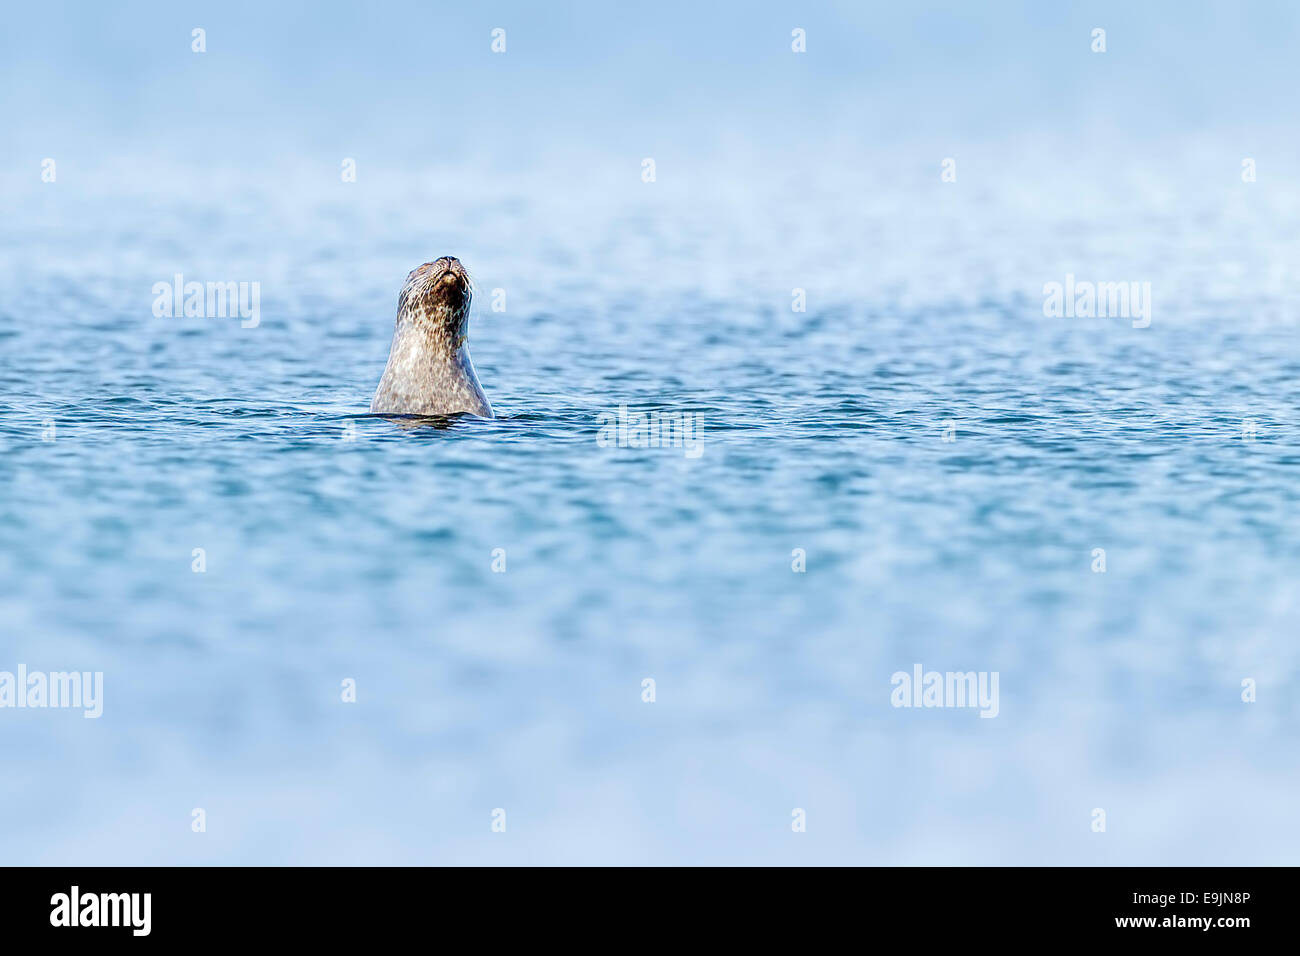 Harbour seal (Phoca vitulina) bottling in the blue waters near the shore of the Isle of Mull, Inner Hebrides, Scotland Stock Photo